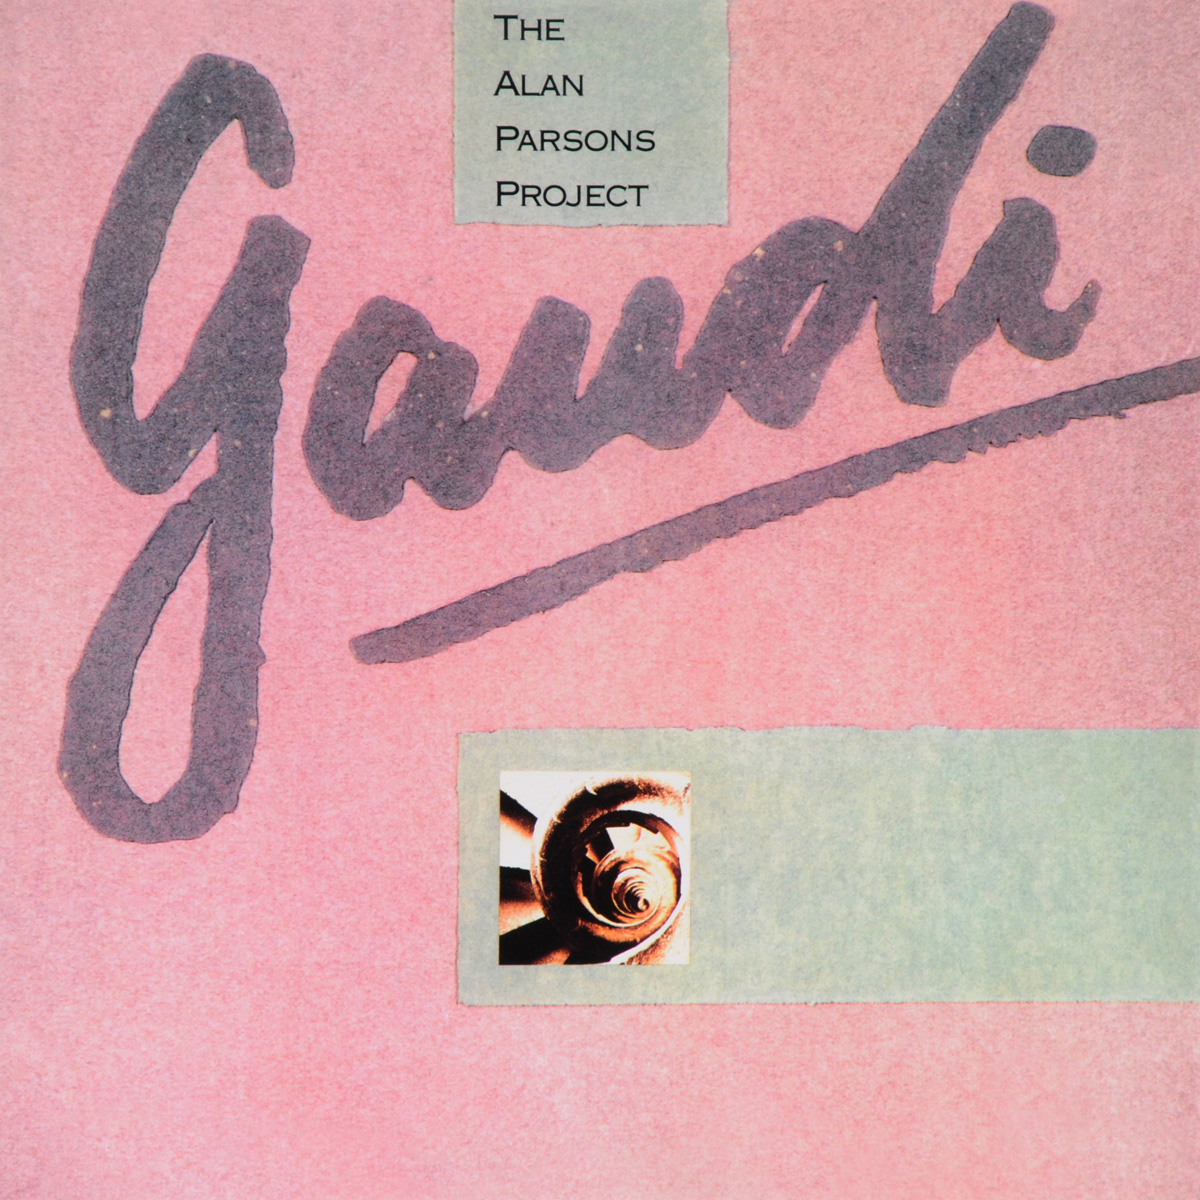 The Alan Parsons Project The Alan Parsons Project. Gaudi (LP) the alan parsons project the alan parsons project gaudi